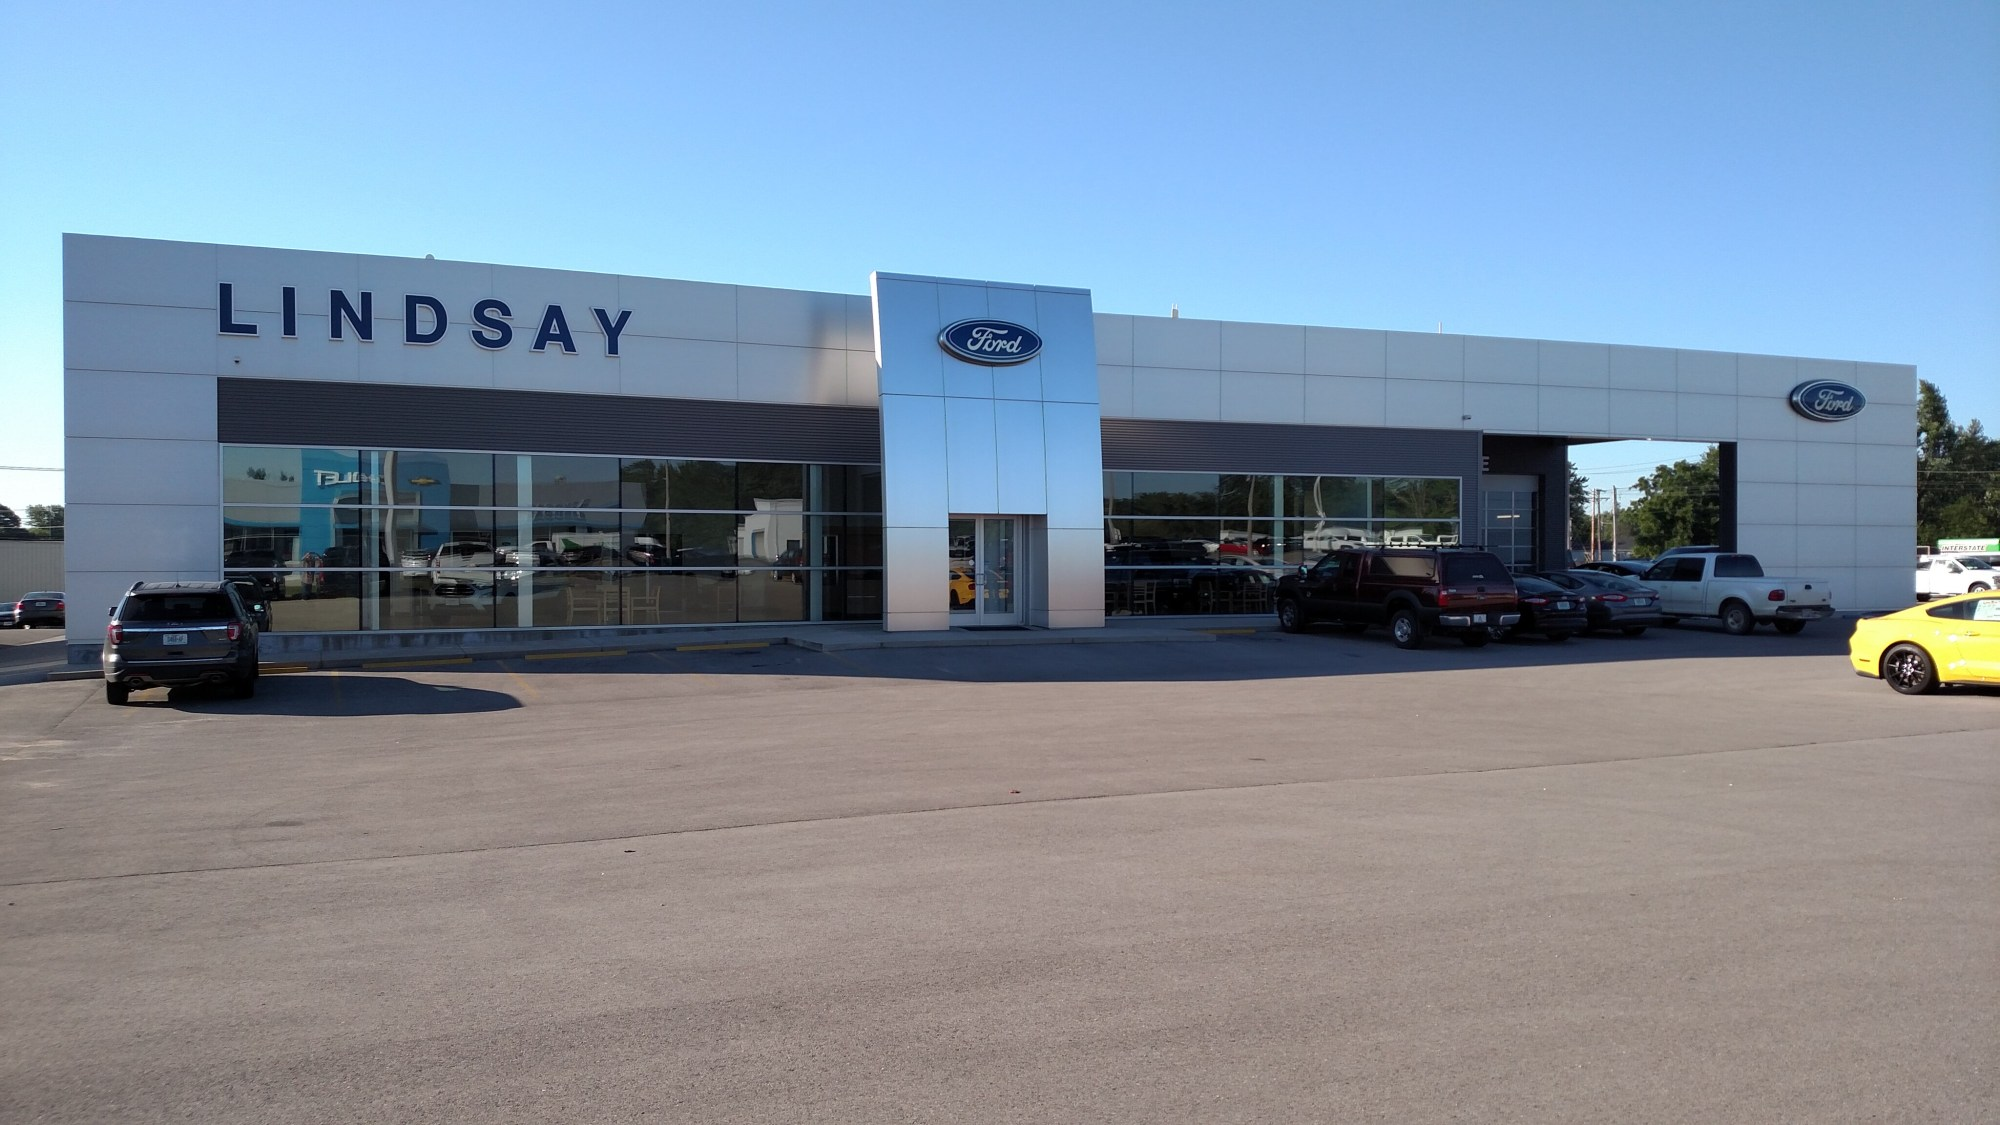 welcome to lindsay auto group chevrolet chrysler dodge ford jeep ram [ 2000 x 1125 Pixel ]